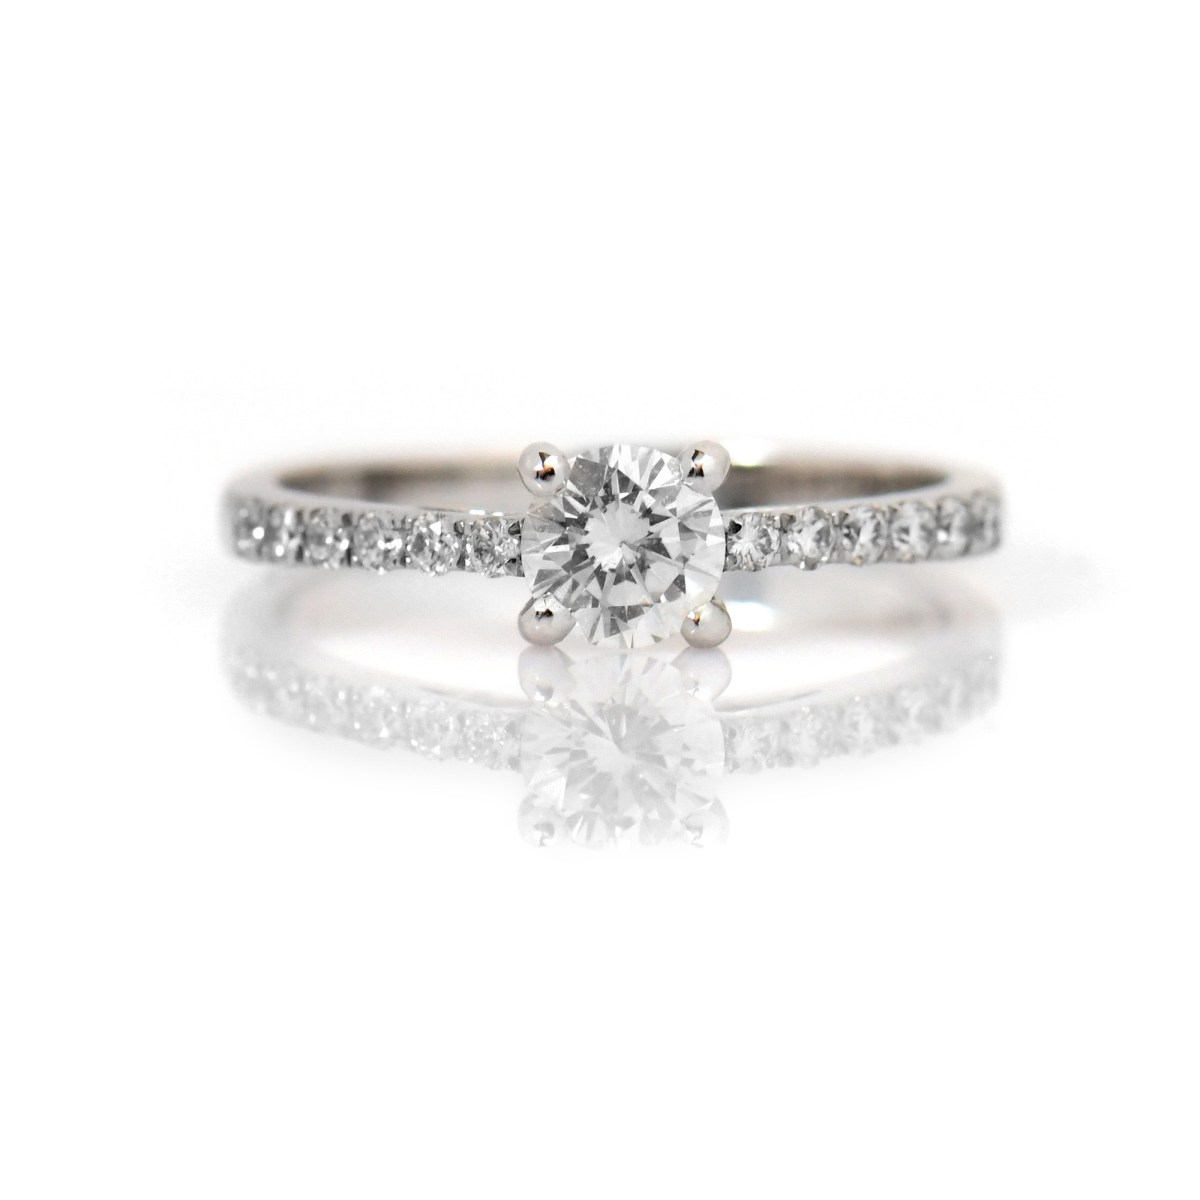 Bague Alliance Solitaire diamant,